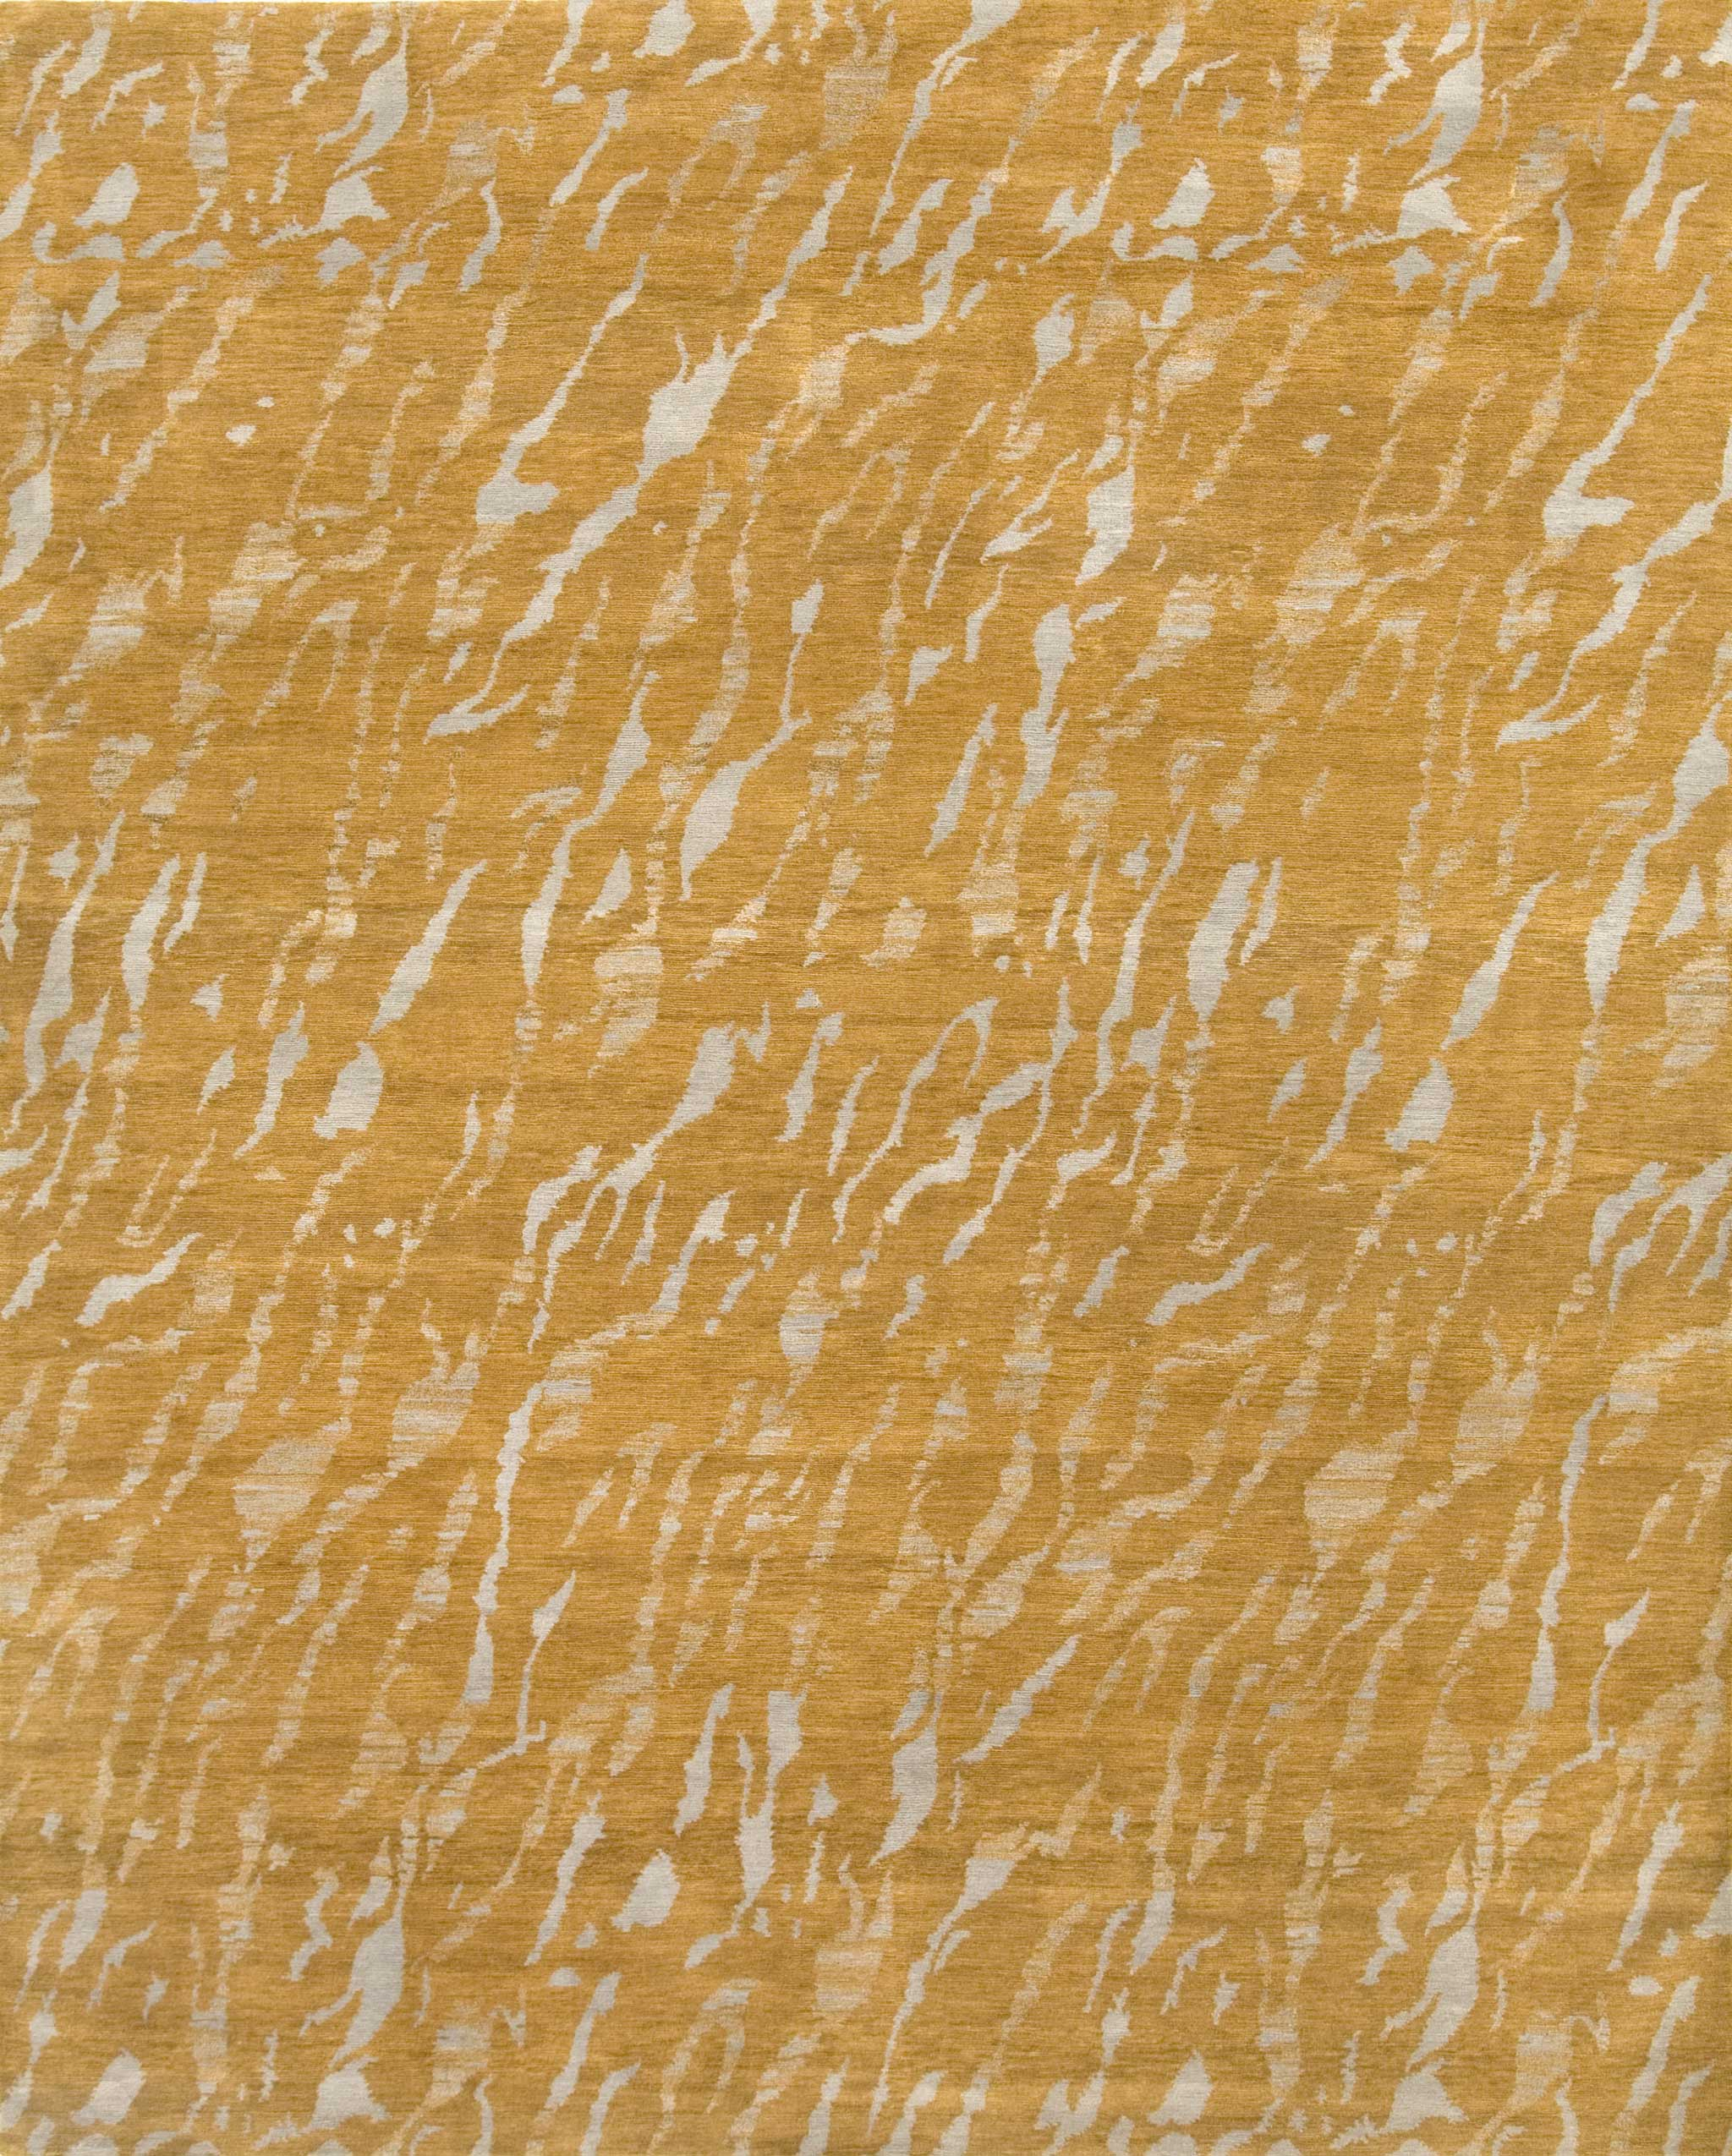 Tigris in colour Mocha by Tamarian - 100% wool handknotted in Nepal.   Image courtesy of Tamarian.